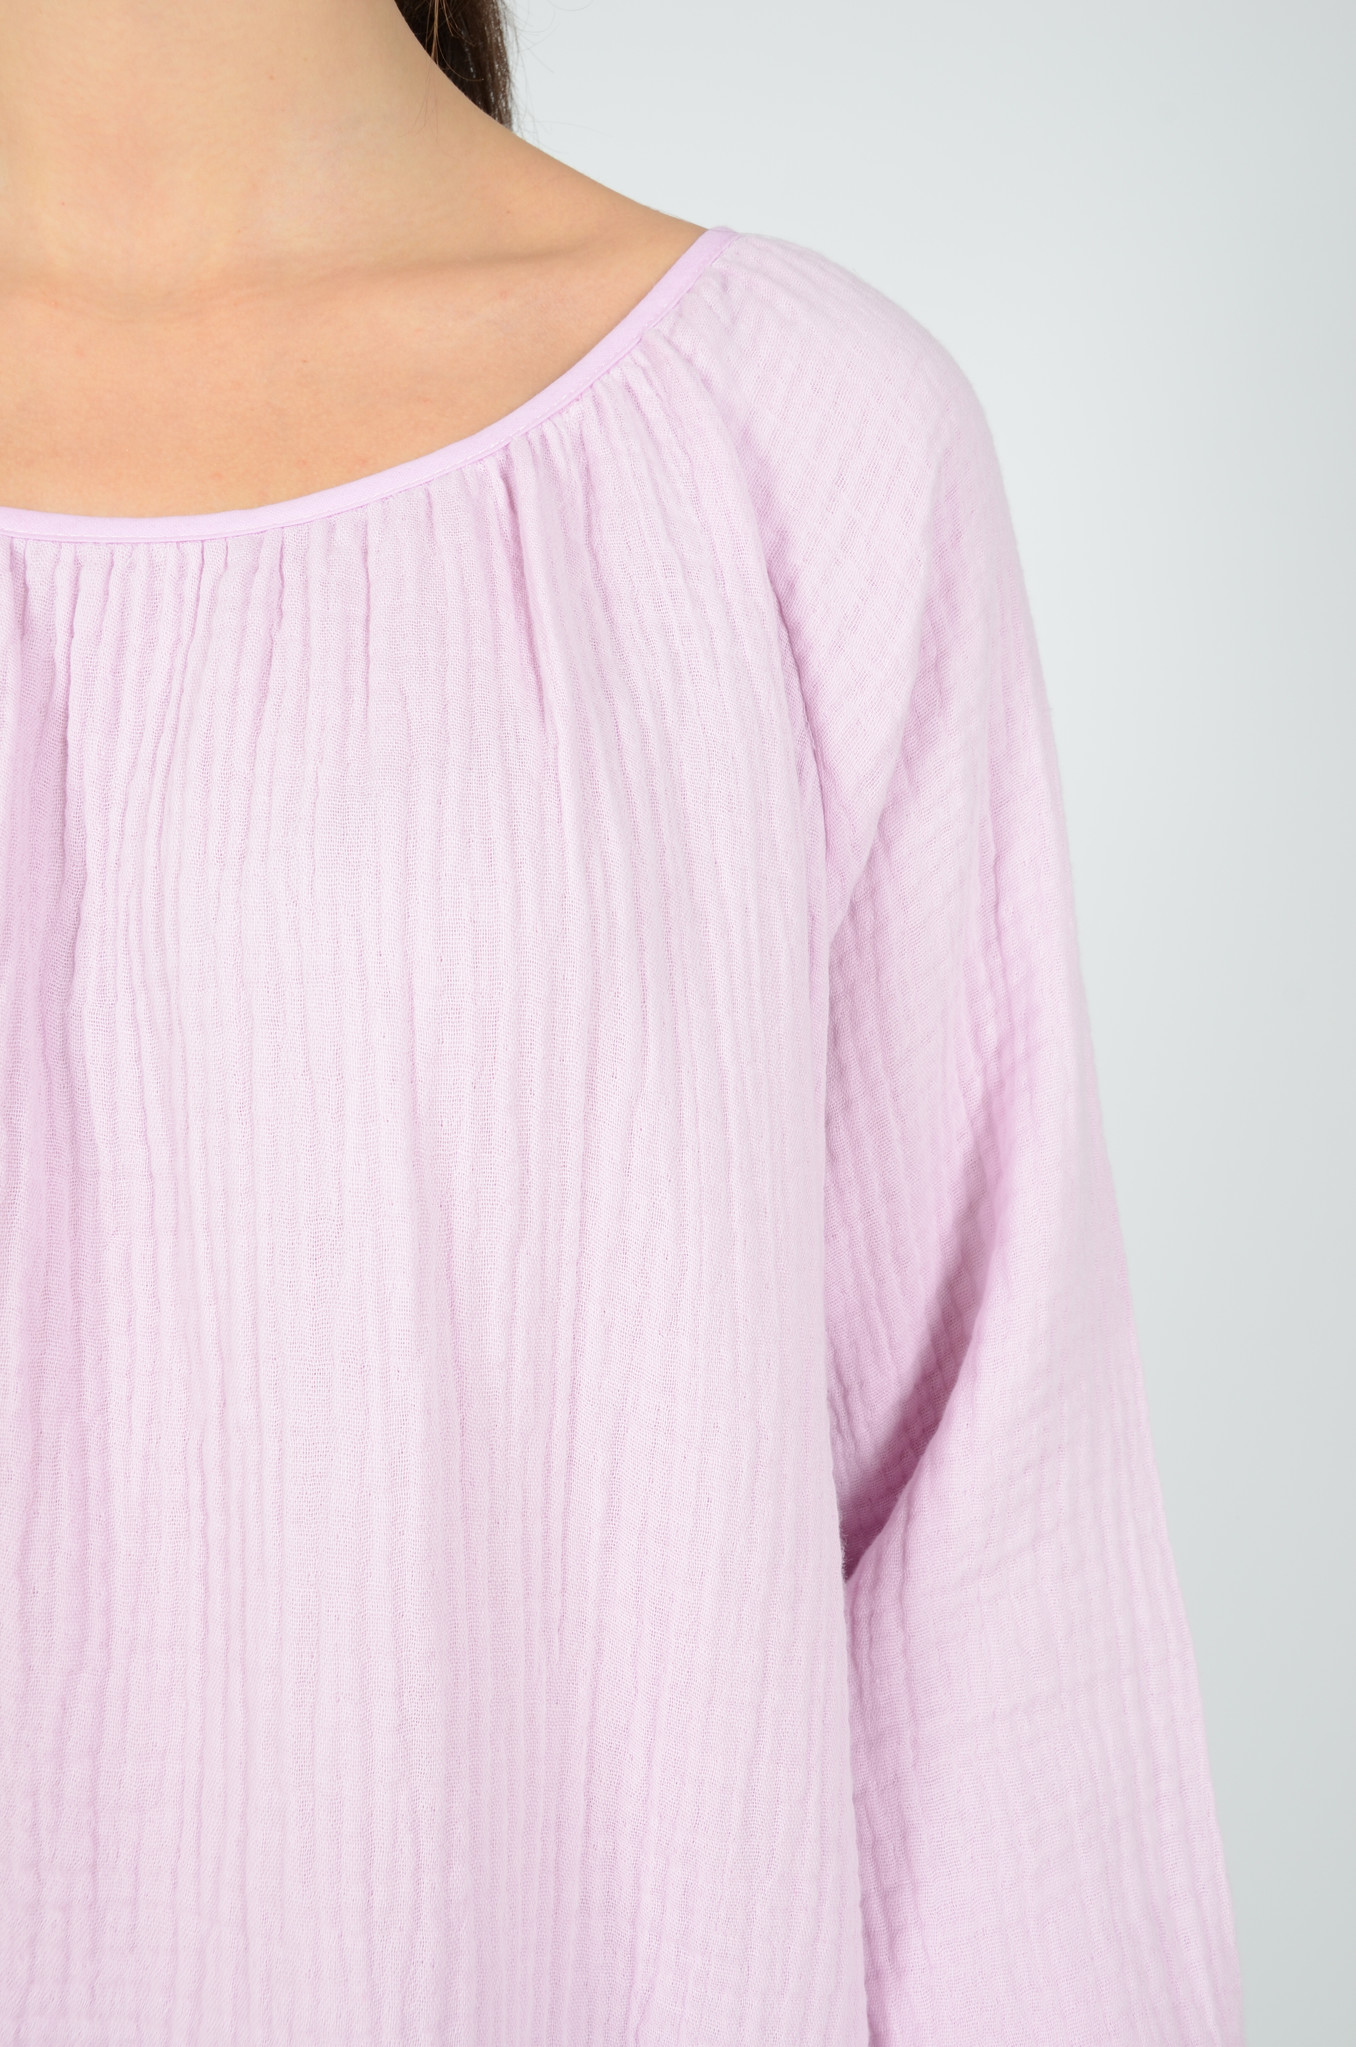 MORNING BLOUSE IN LILAC-5